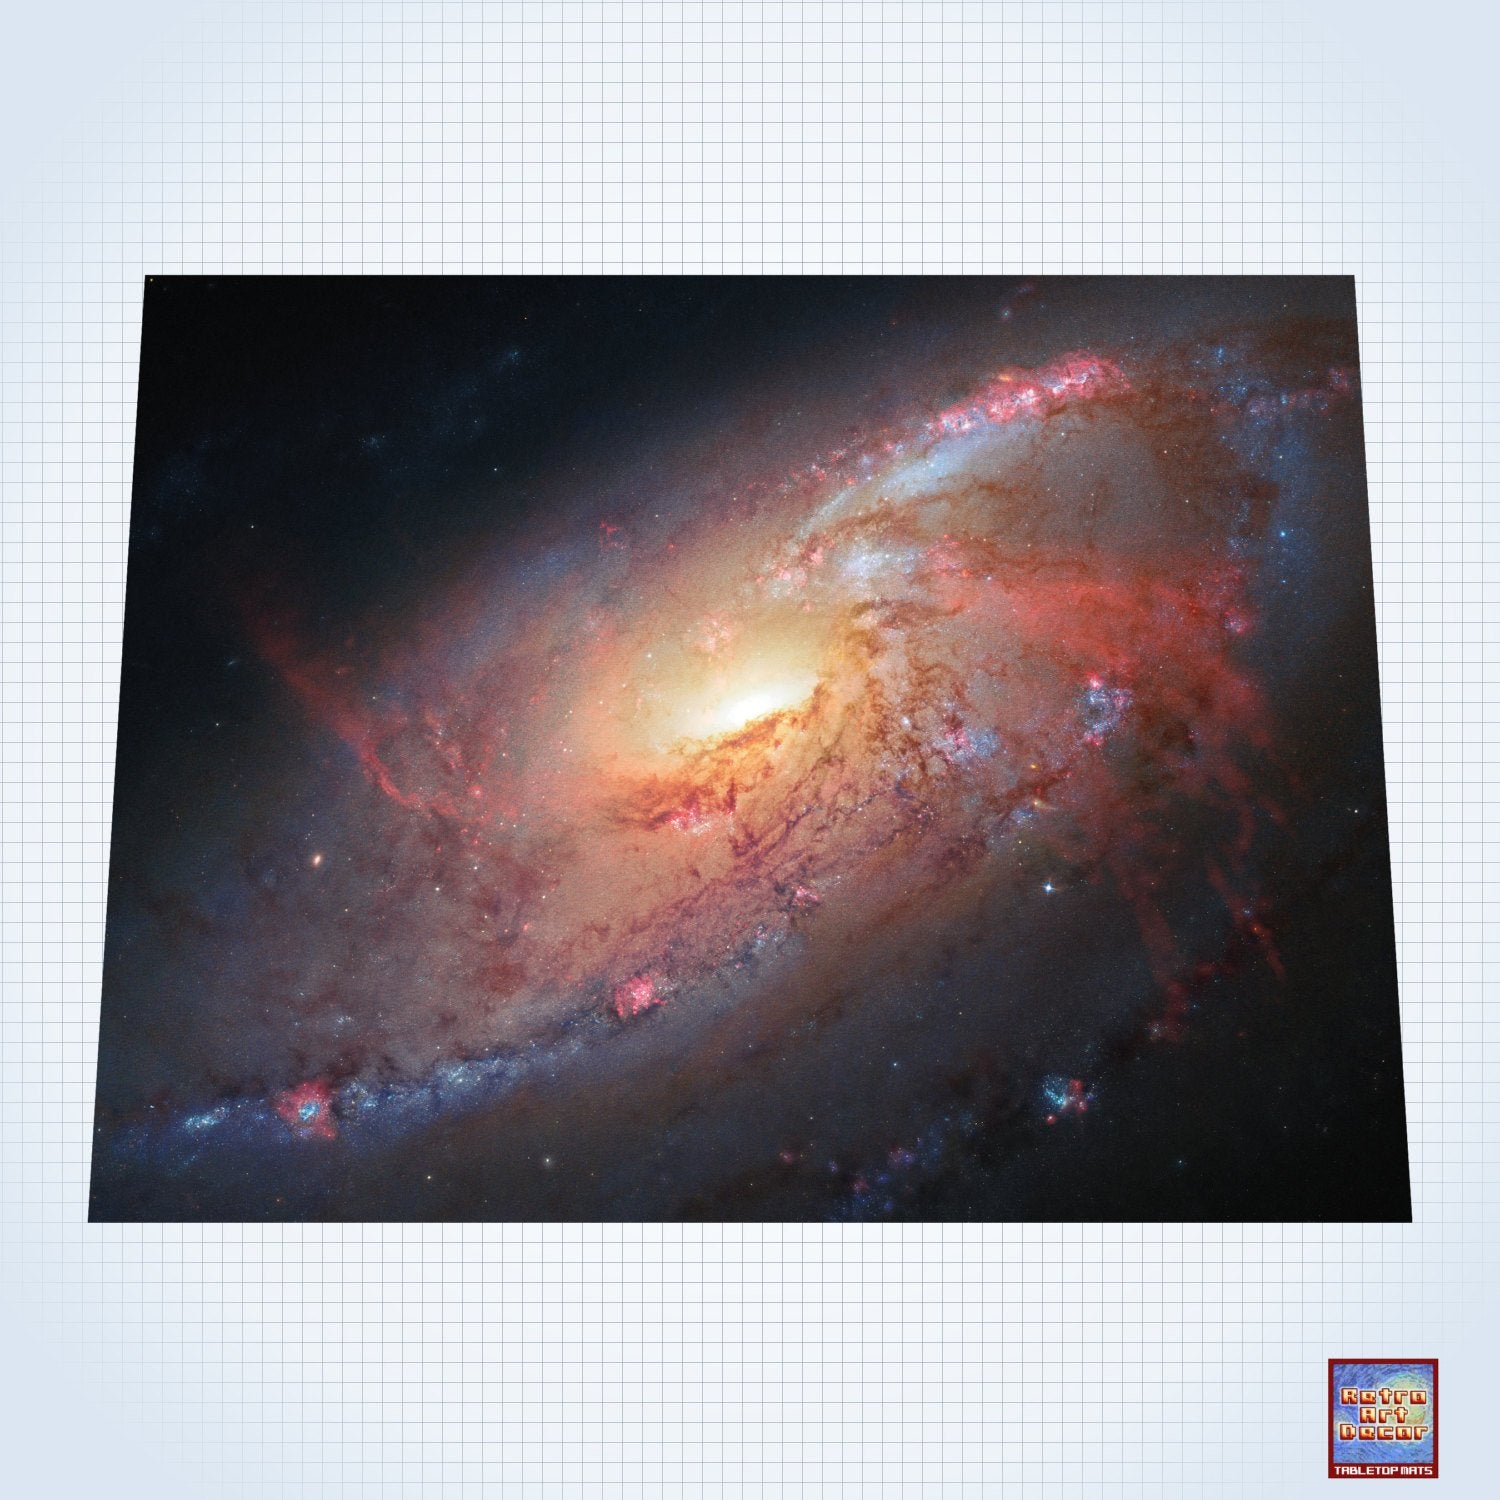 "Space, Outer Edges of a Supermassive Black Hole - #GM103 - 60"" x 80"" (4' x 6' plus) Fleece Table Top Gaming Mat"